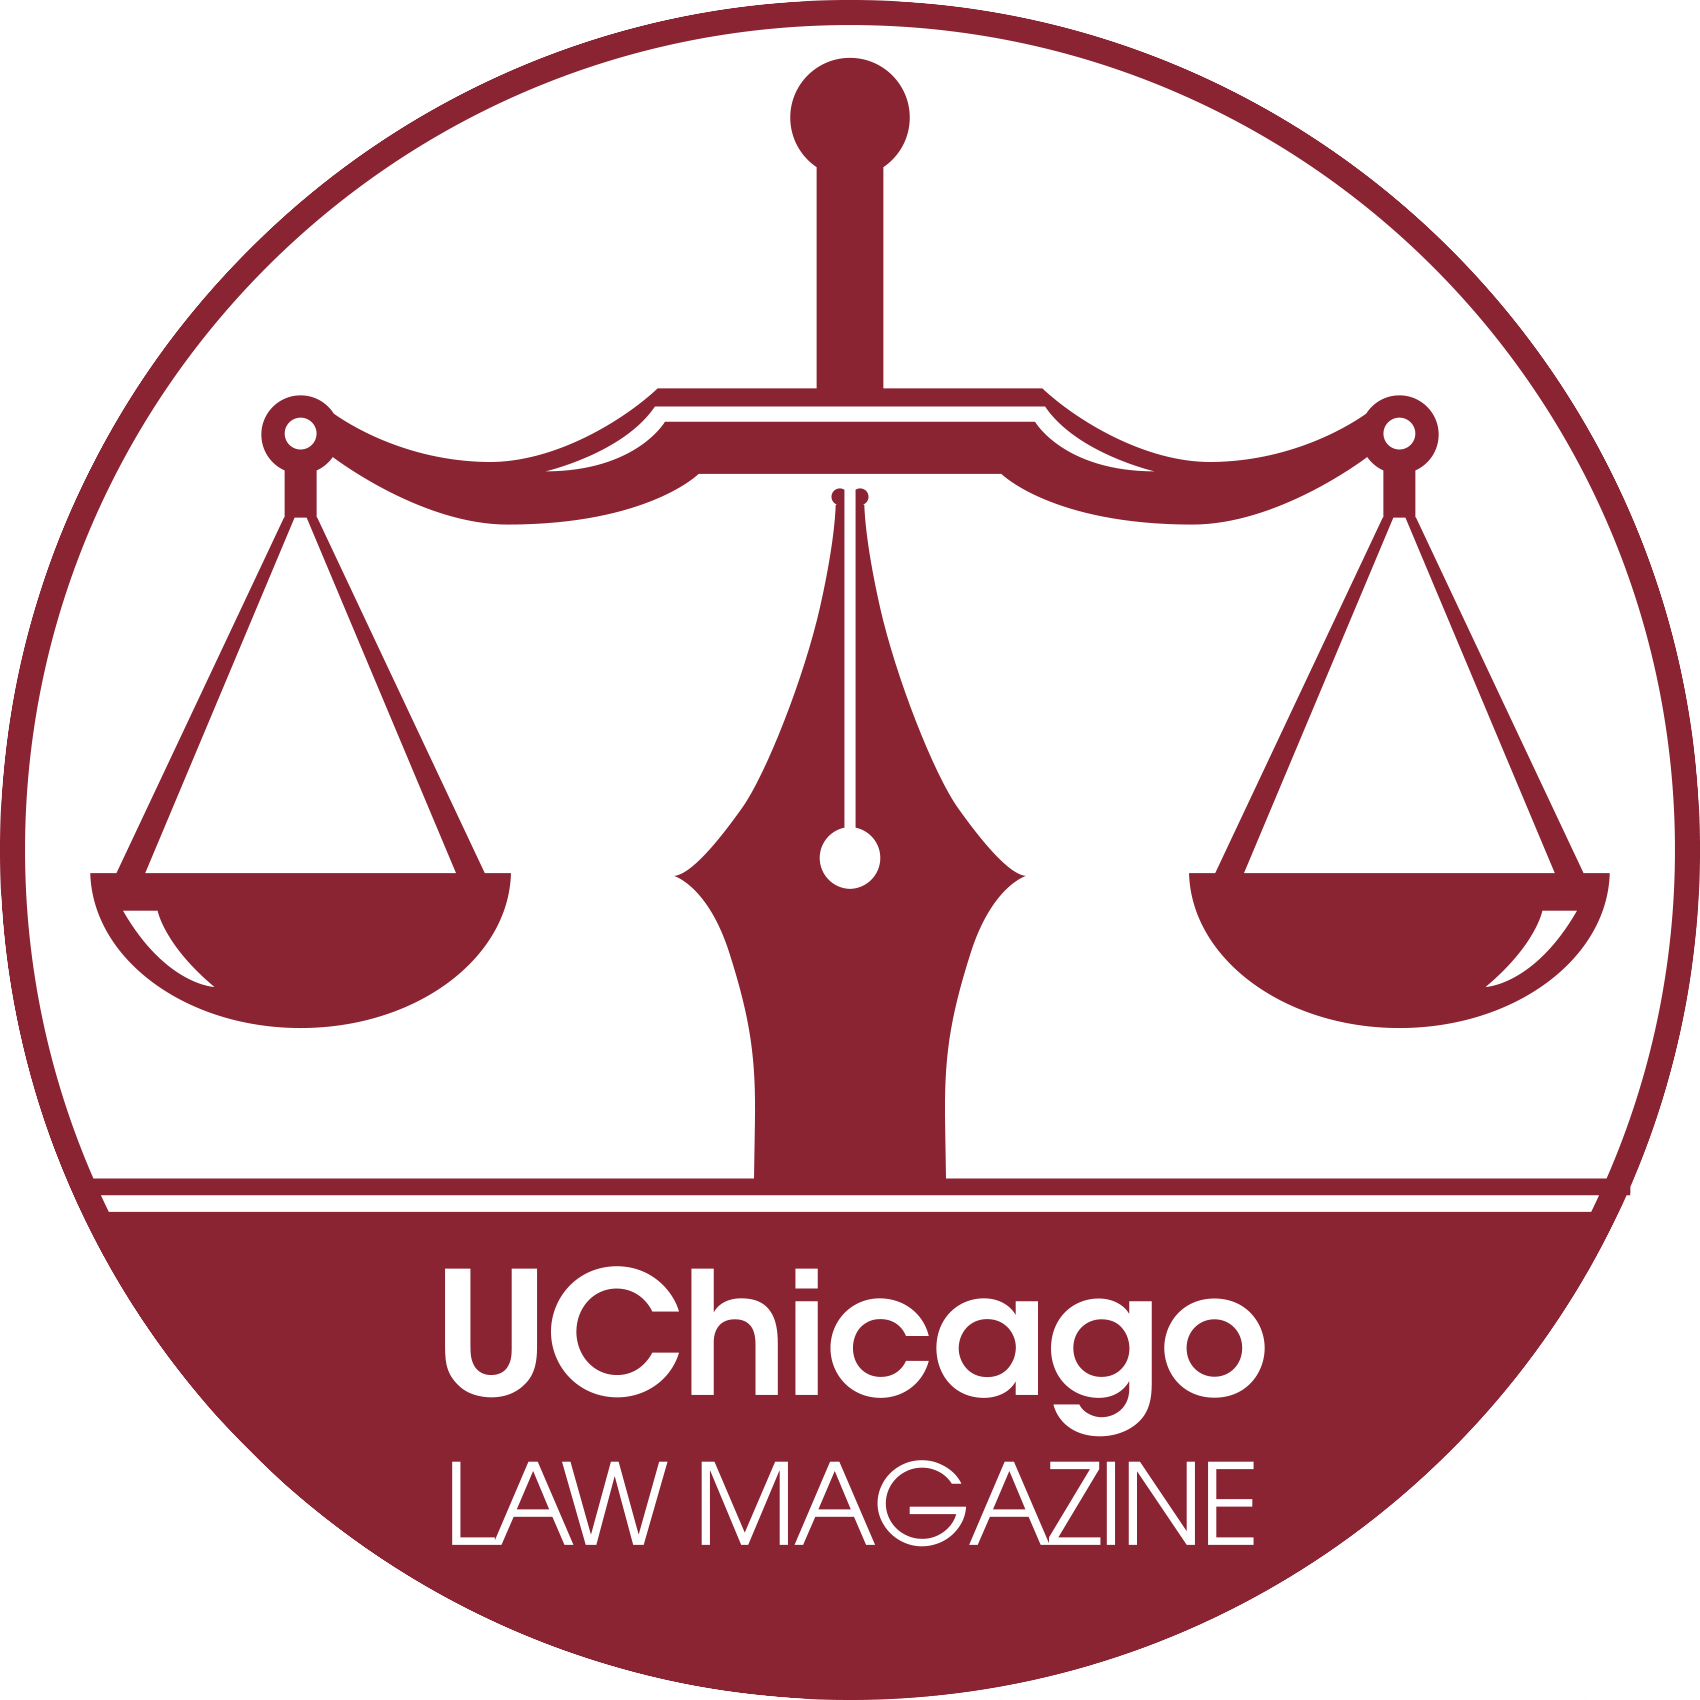 UChicago Law Magazine